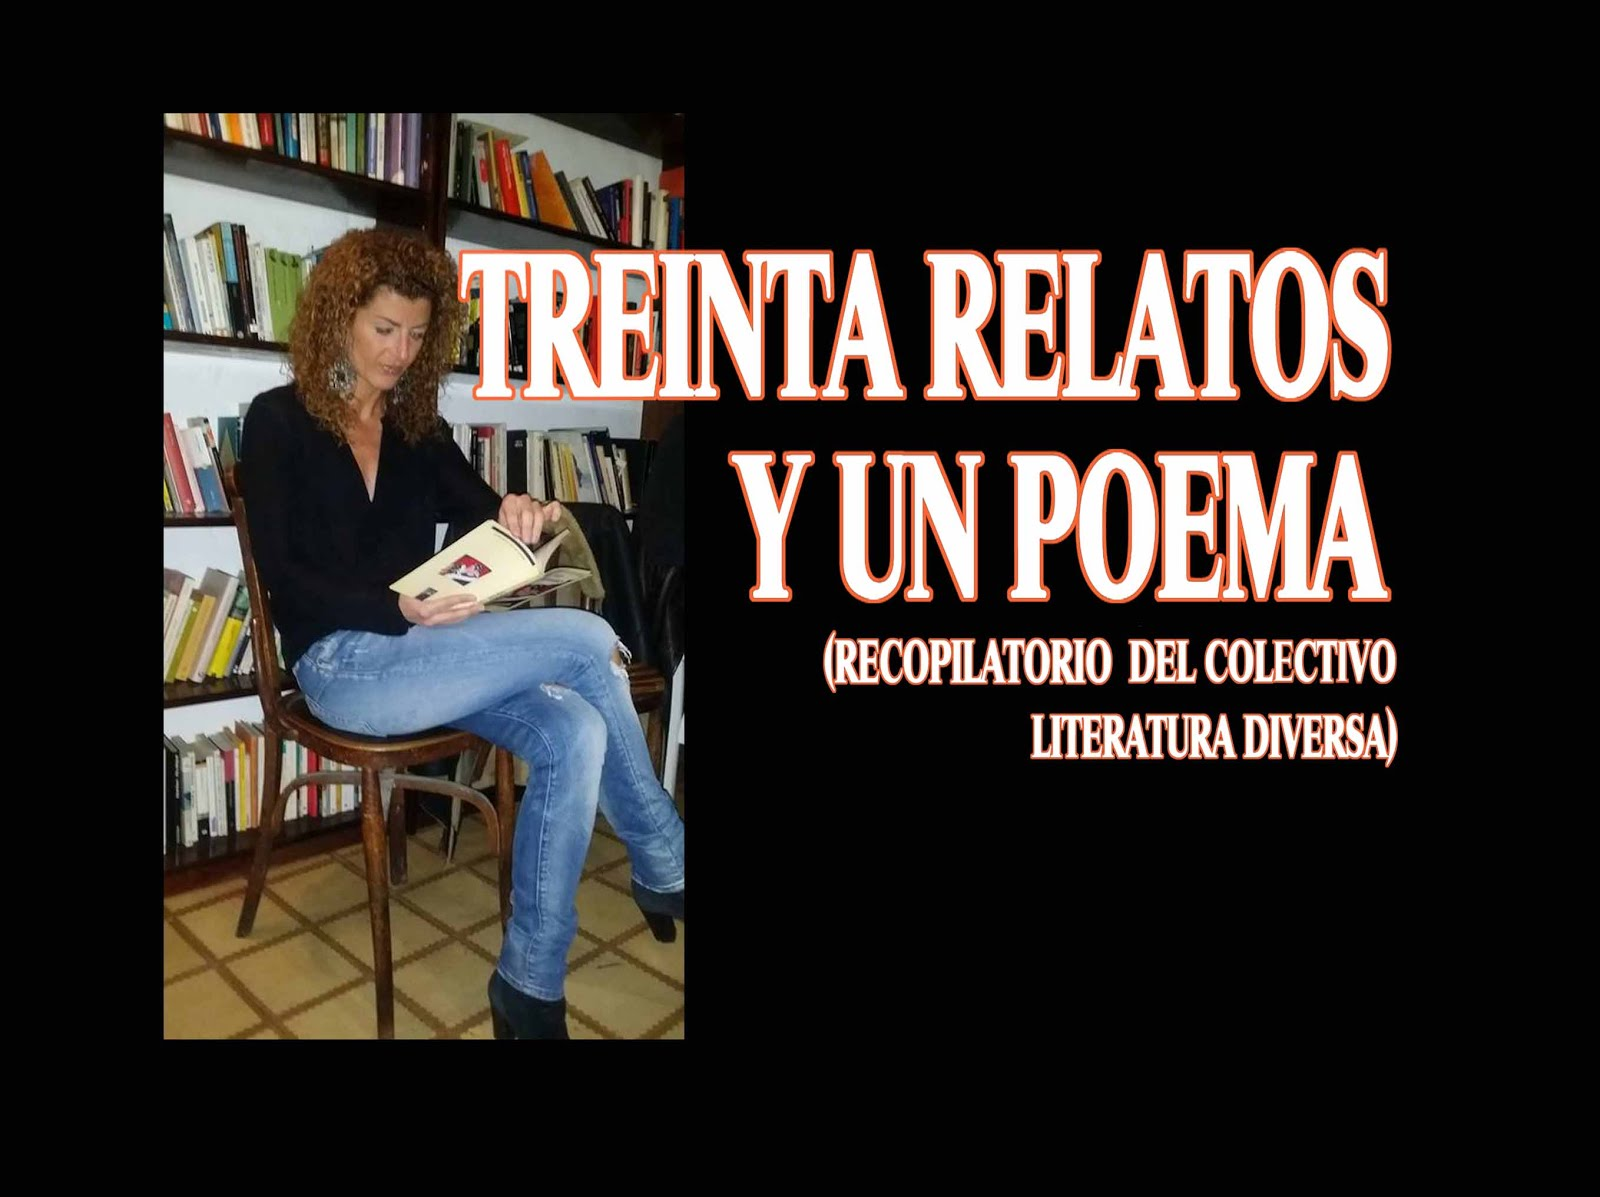 TREINTA RELATOS Y UN POEMA